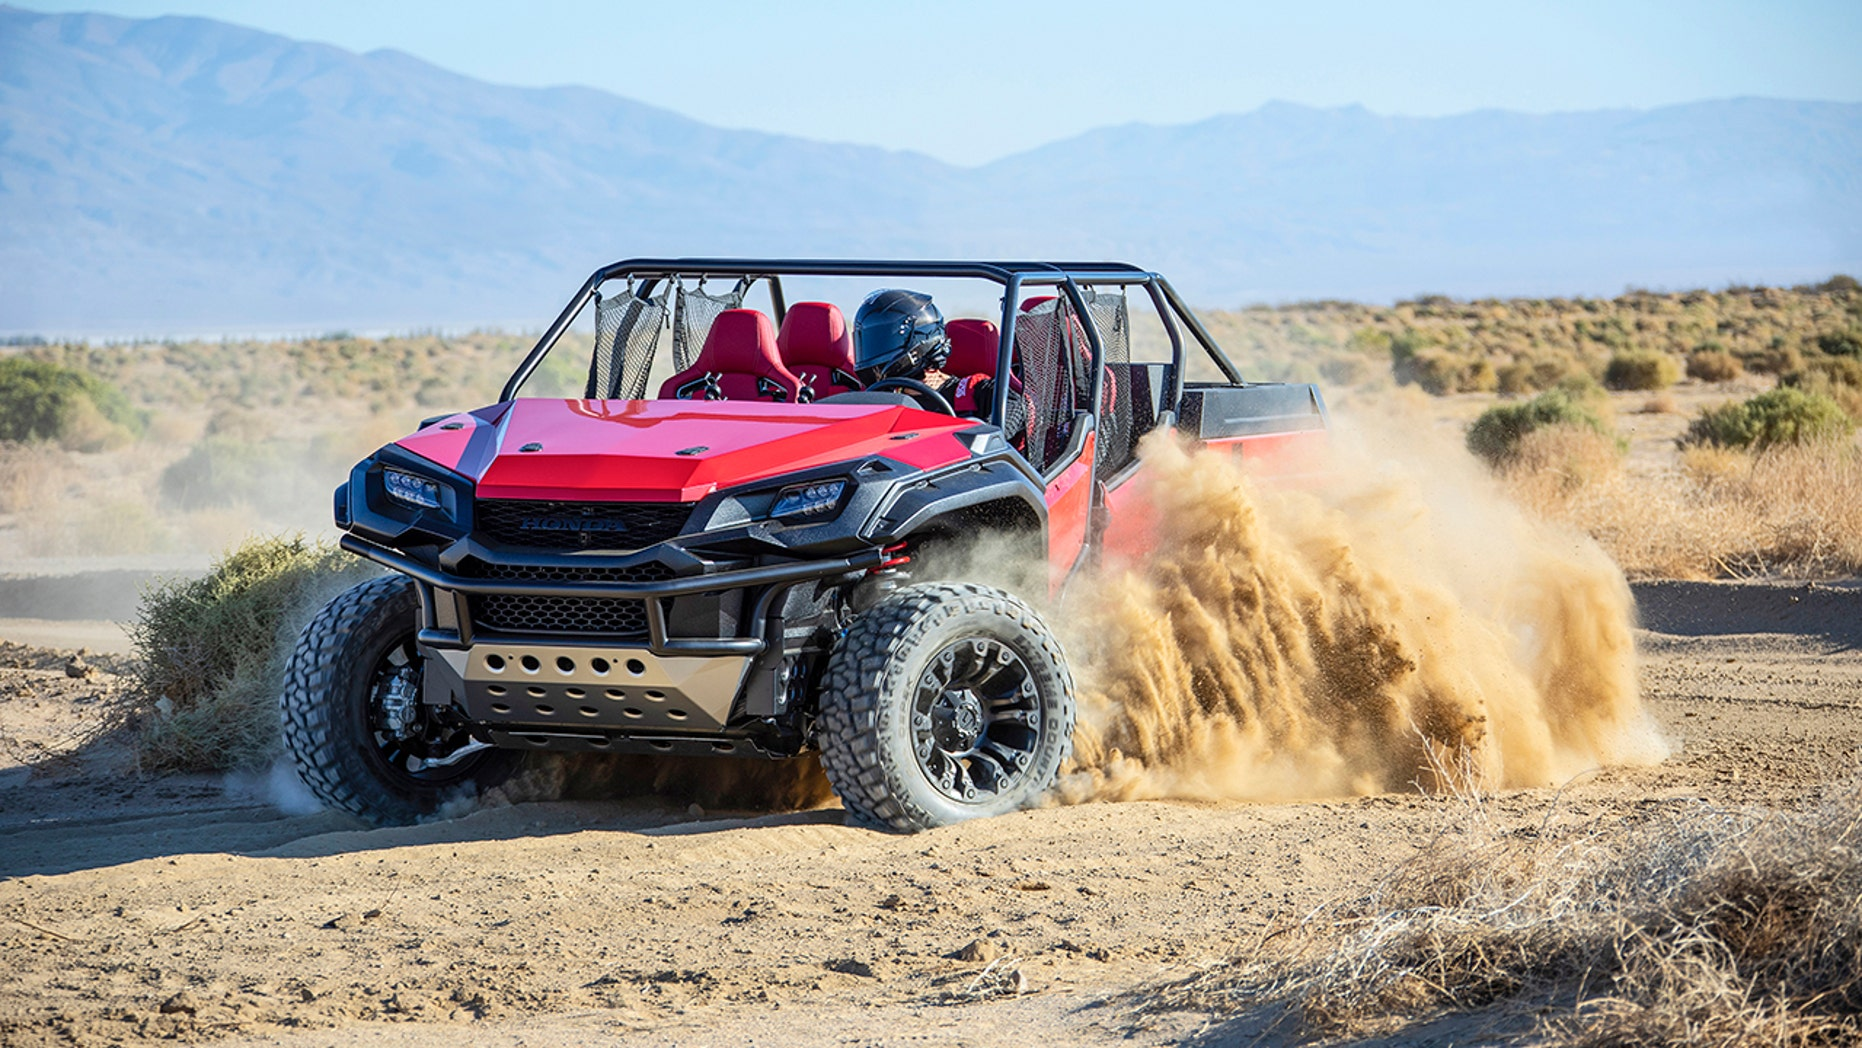 Honda's Rugged Open Air Vehicle concept is an off-road dream machine